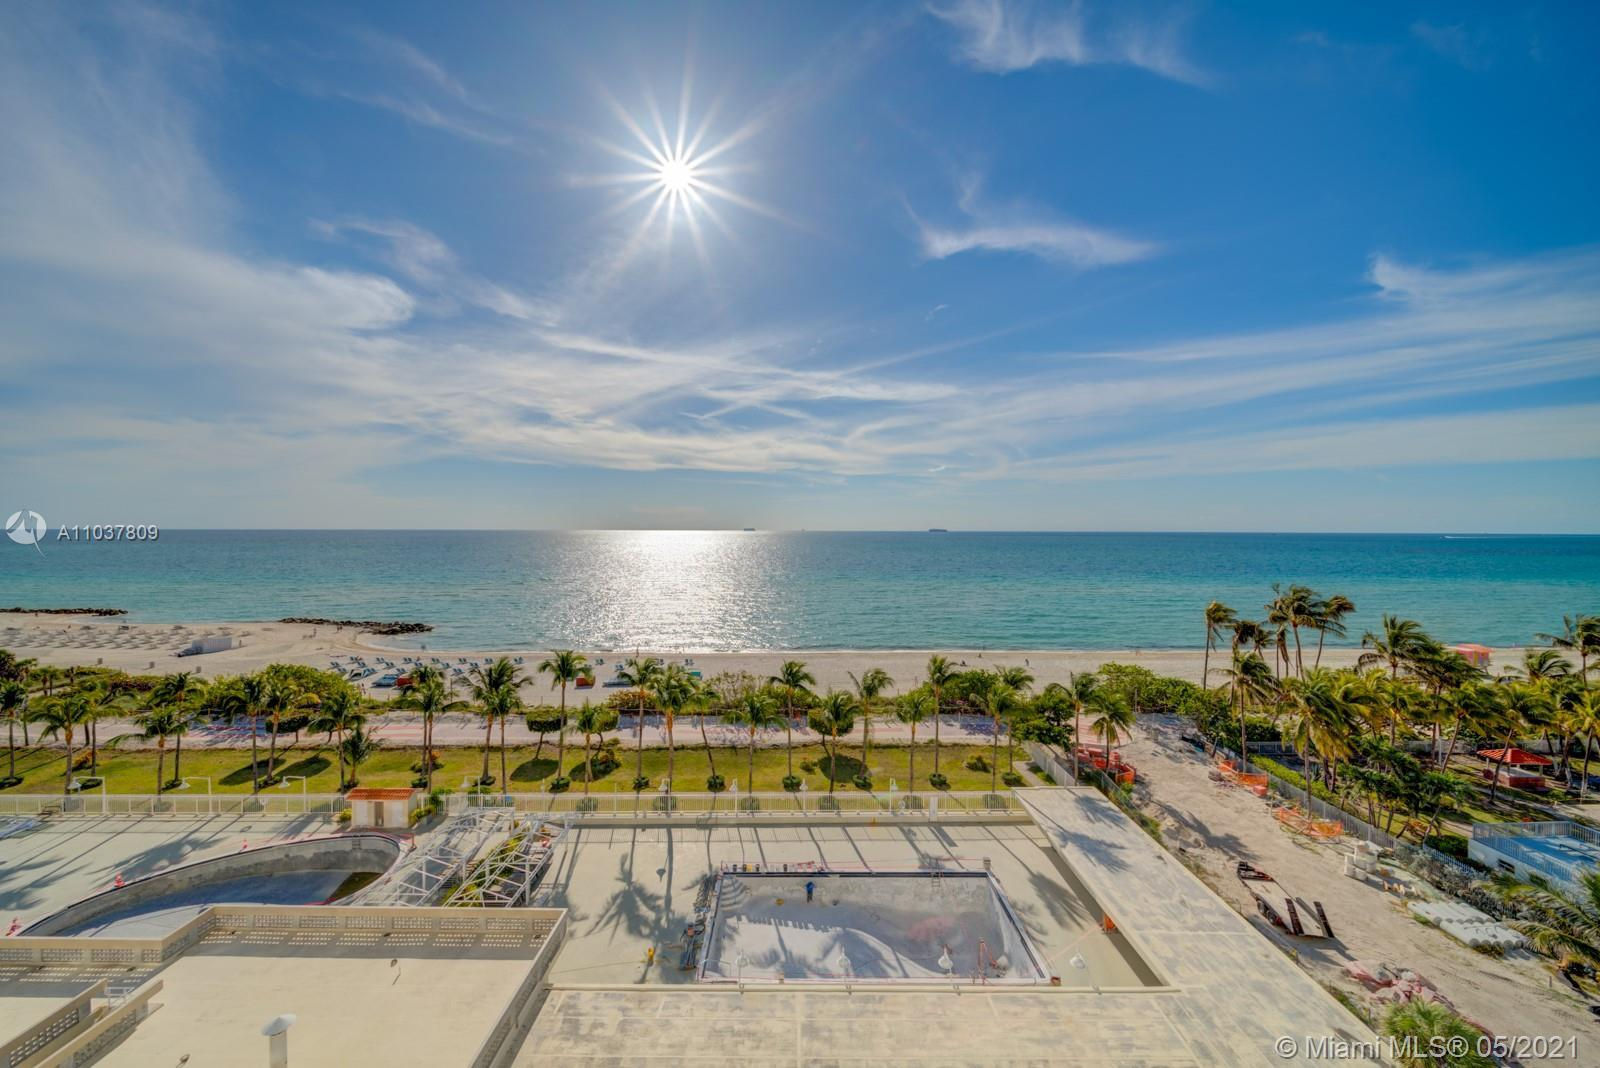 Live where others vacation! Enjoy an amazing view in this 1 bedroom, 1 & 1/2 bath unit in the luxuri